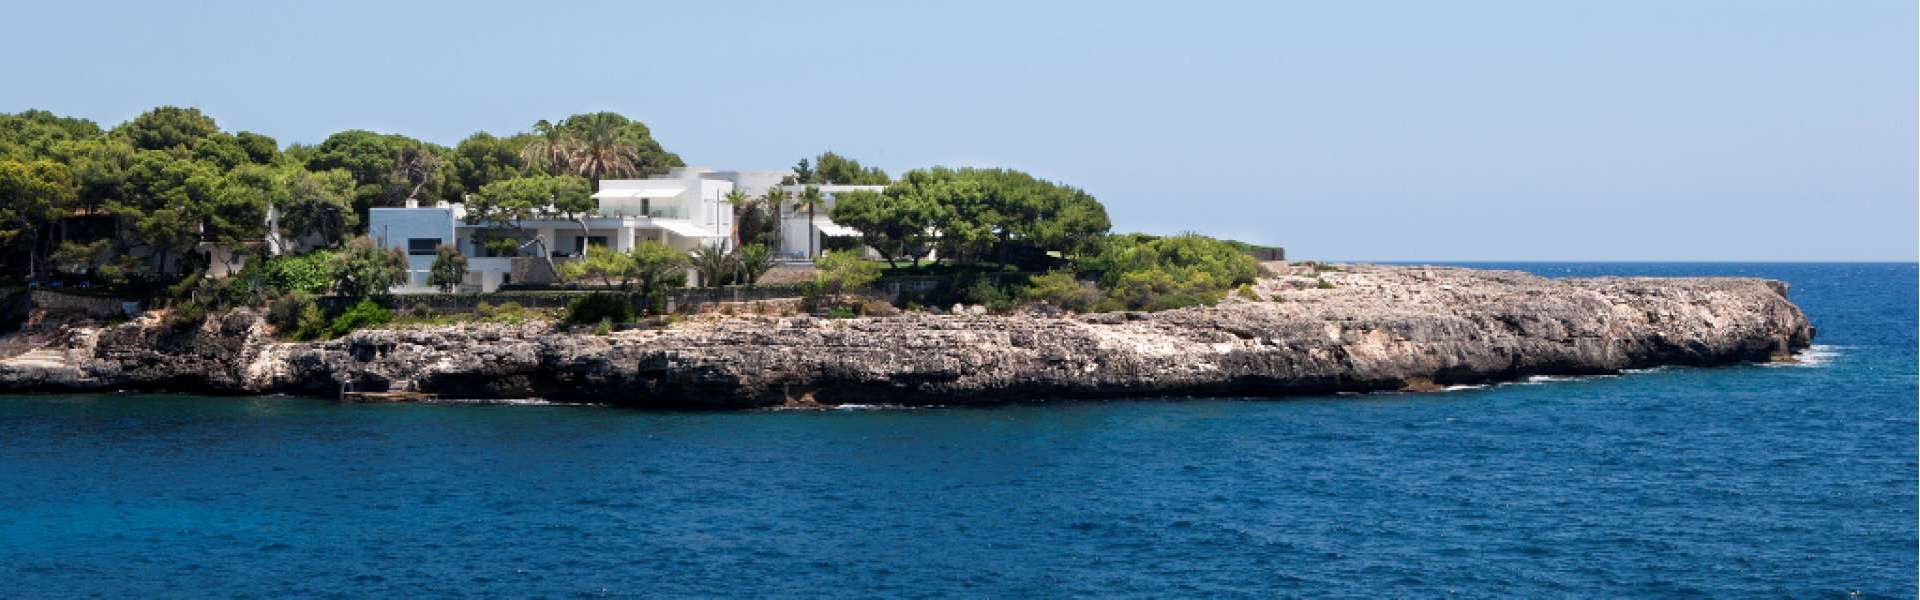 Cala d'Or - Luxusvilla in erster Linie